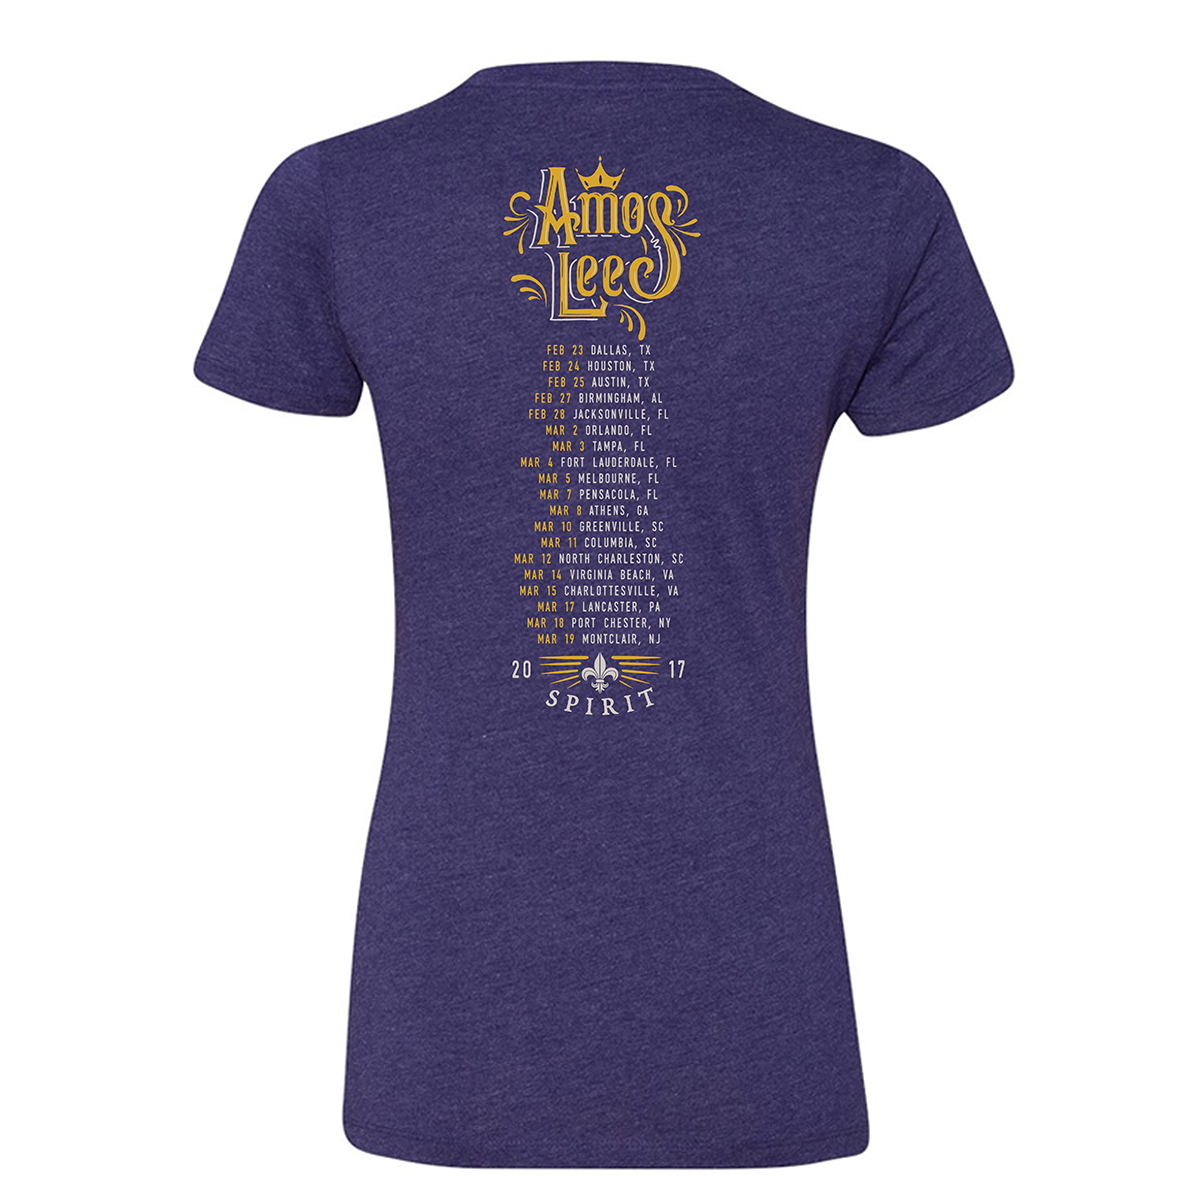 2017 Ladies Spring Tour Tee